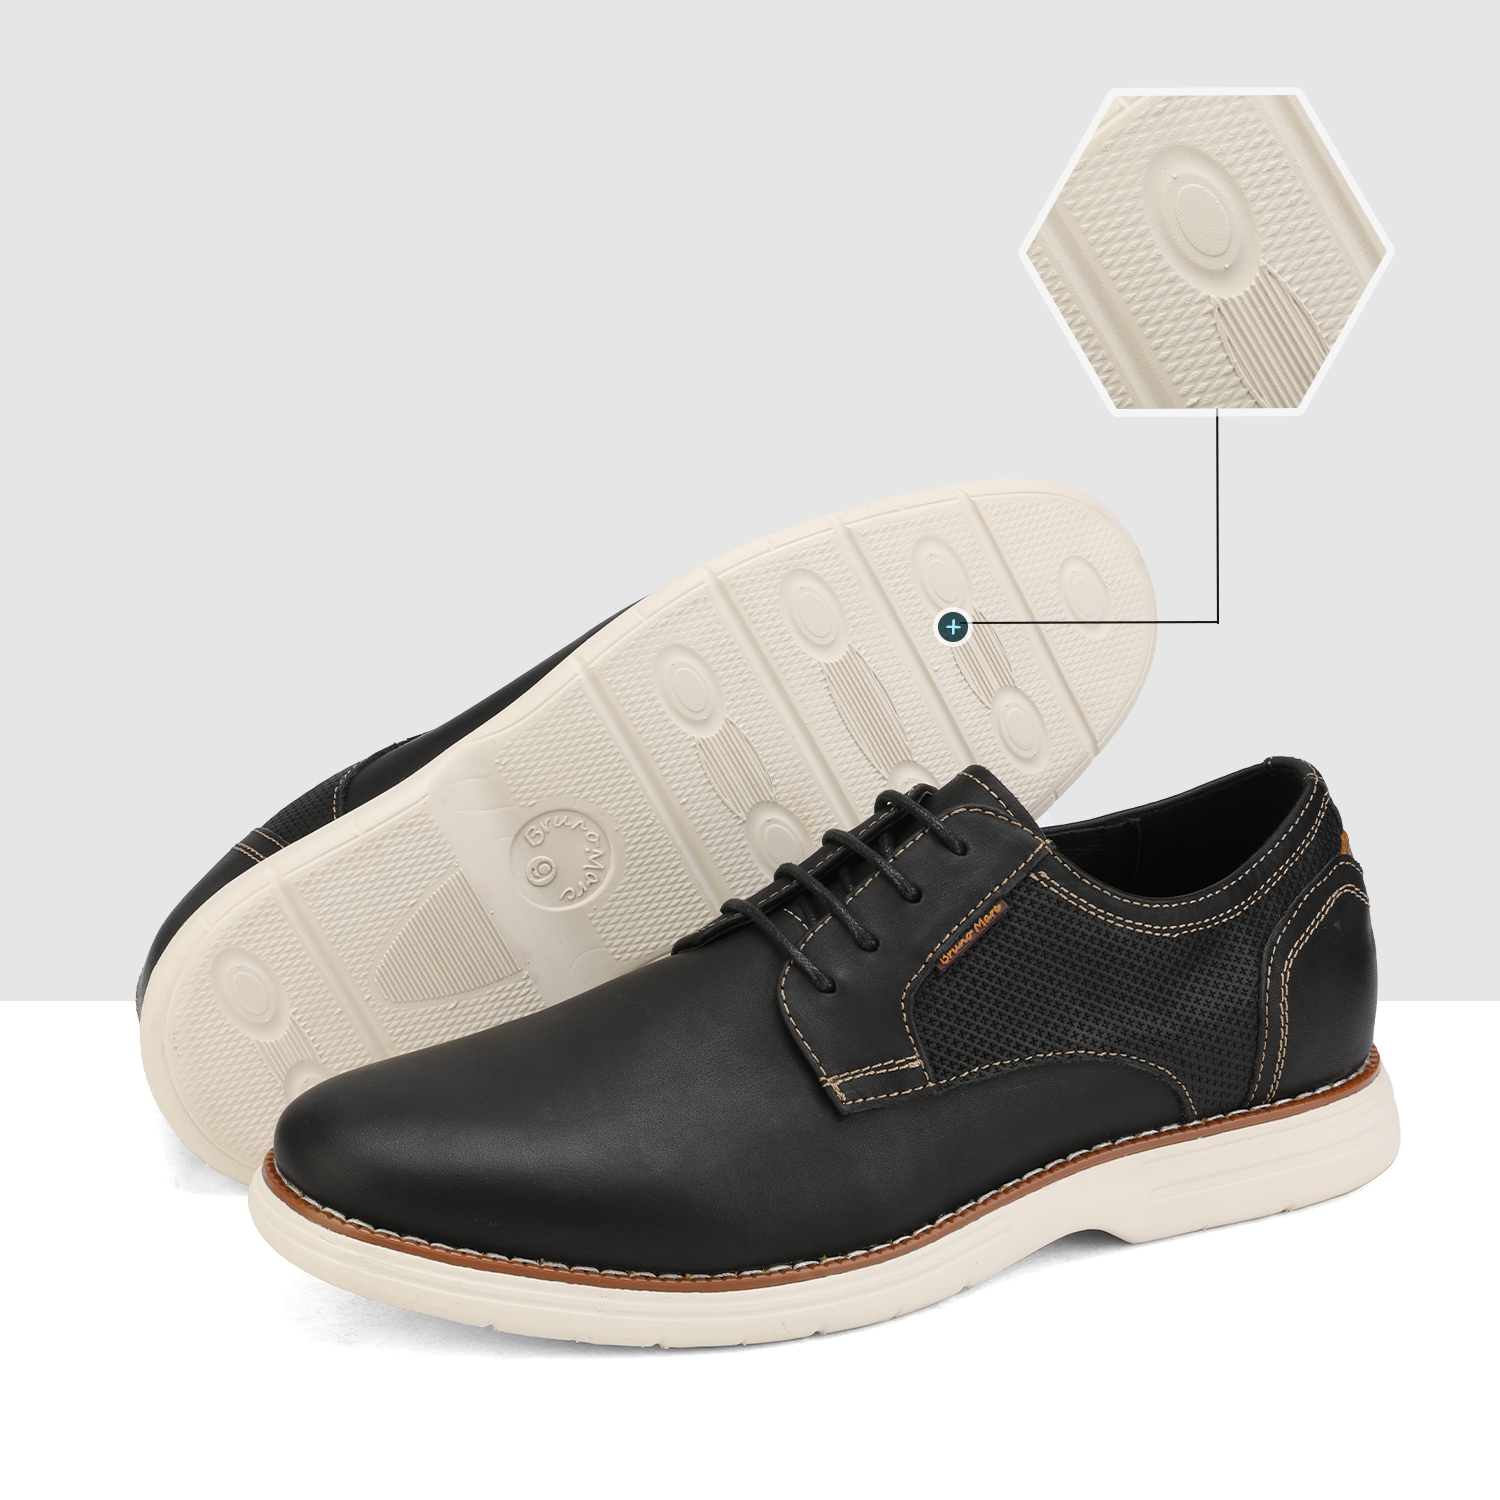 Mens-Fashion-Genuine-Leather-Business-Dress-Sneakers-Casual-Lace-up-Oxford-Shoe thumbnail 10